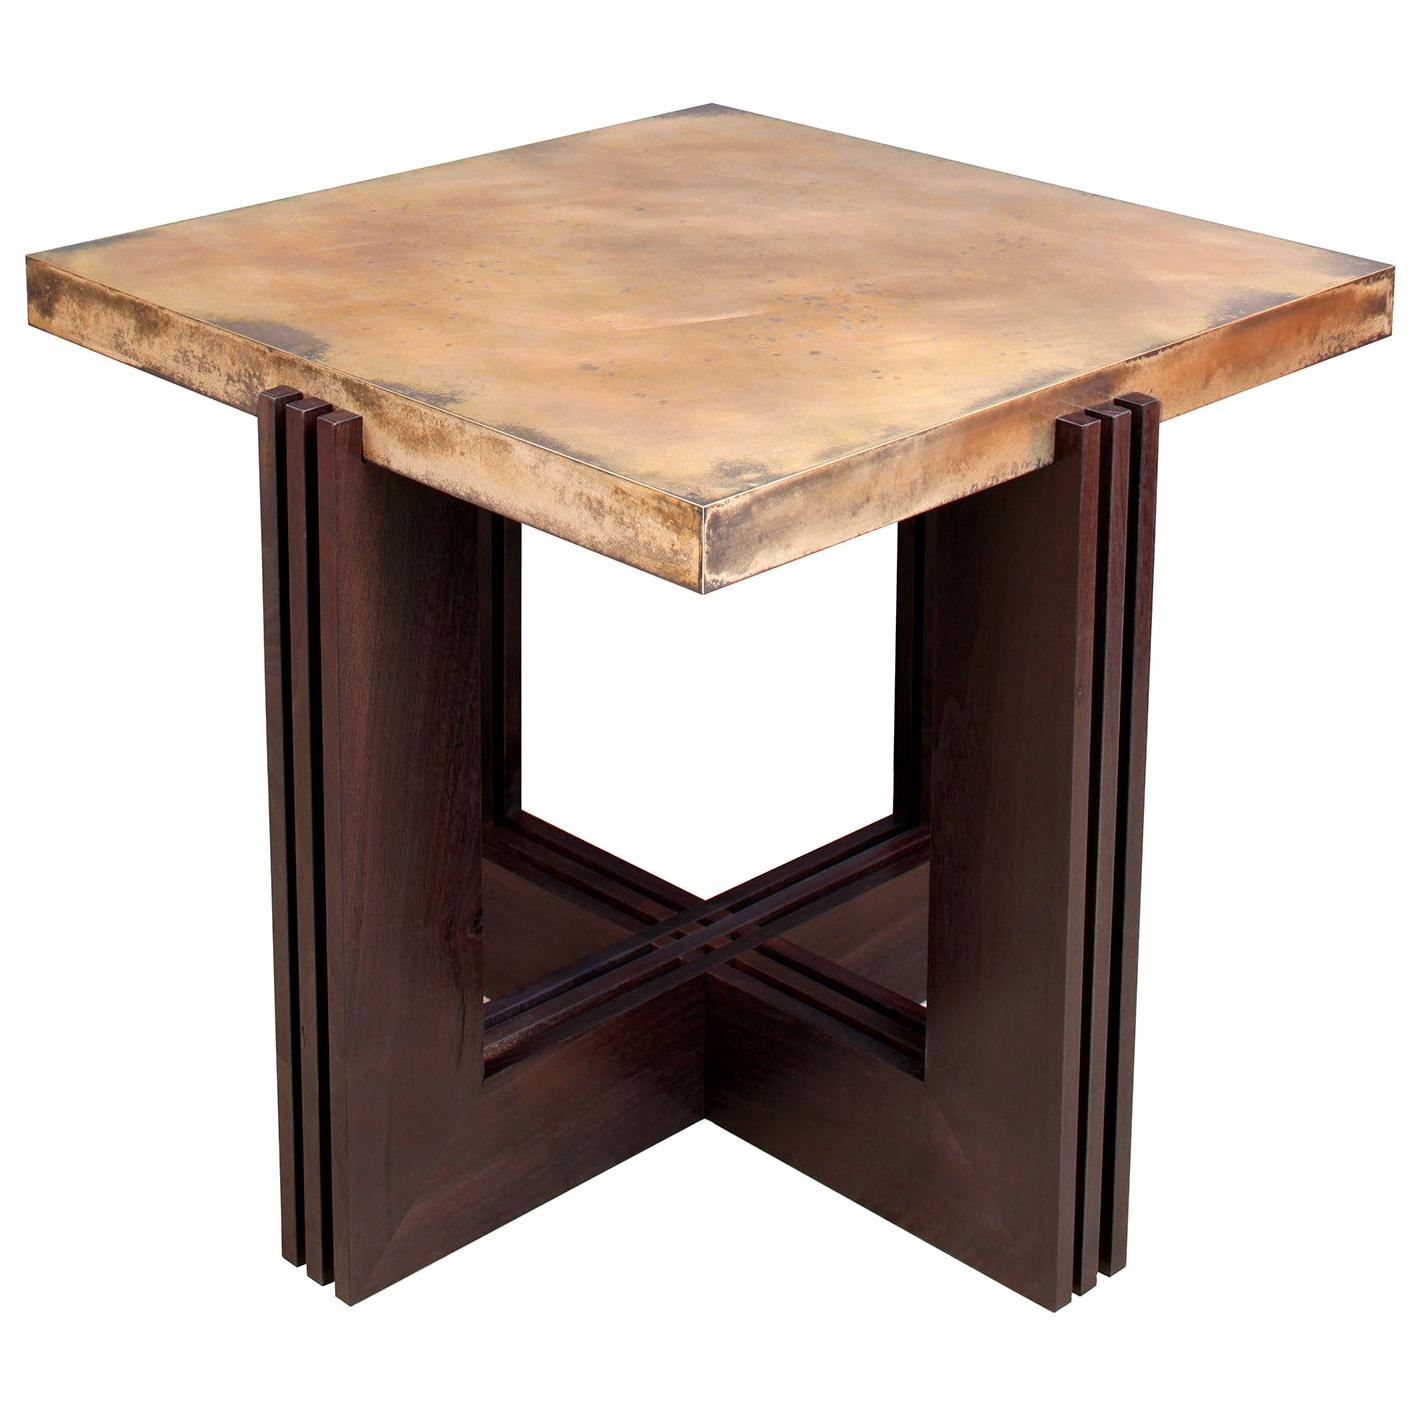 """FLW"" Side Table in Etched Bronze and Ebonized Walnut by Studio Roeper"